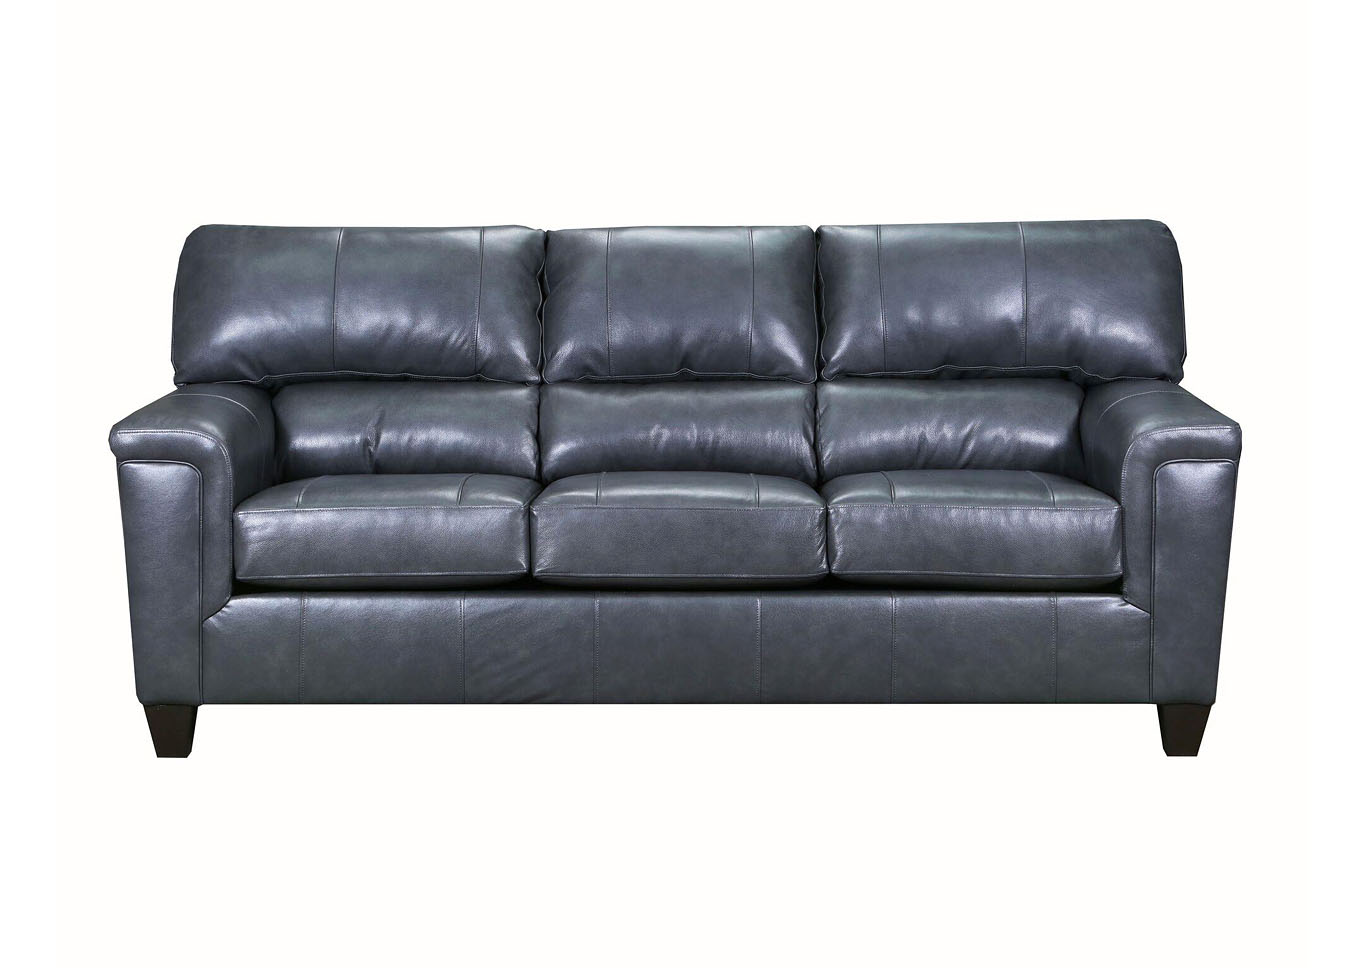 Lane Furniture  Kennedy Top Grain Leather / Mate Sofa  Fog,Instore